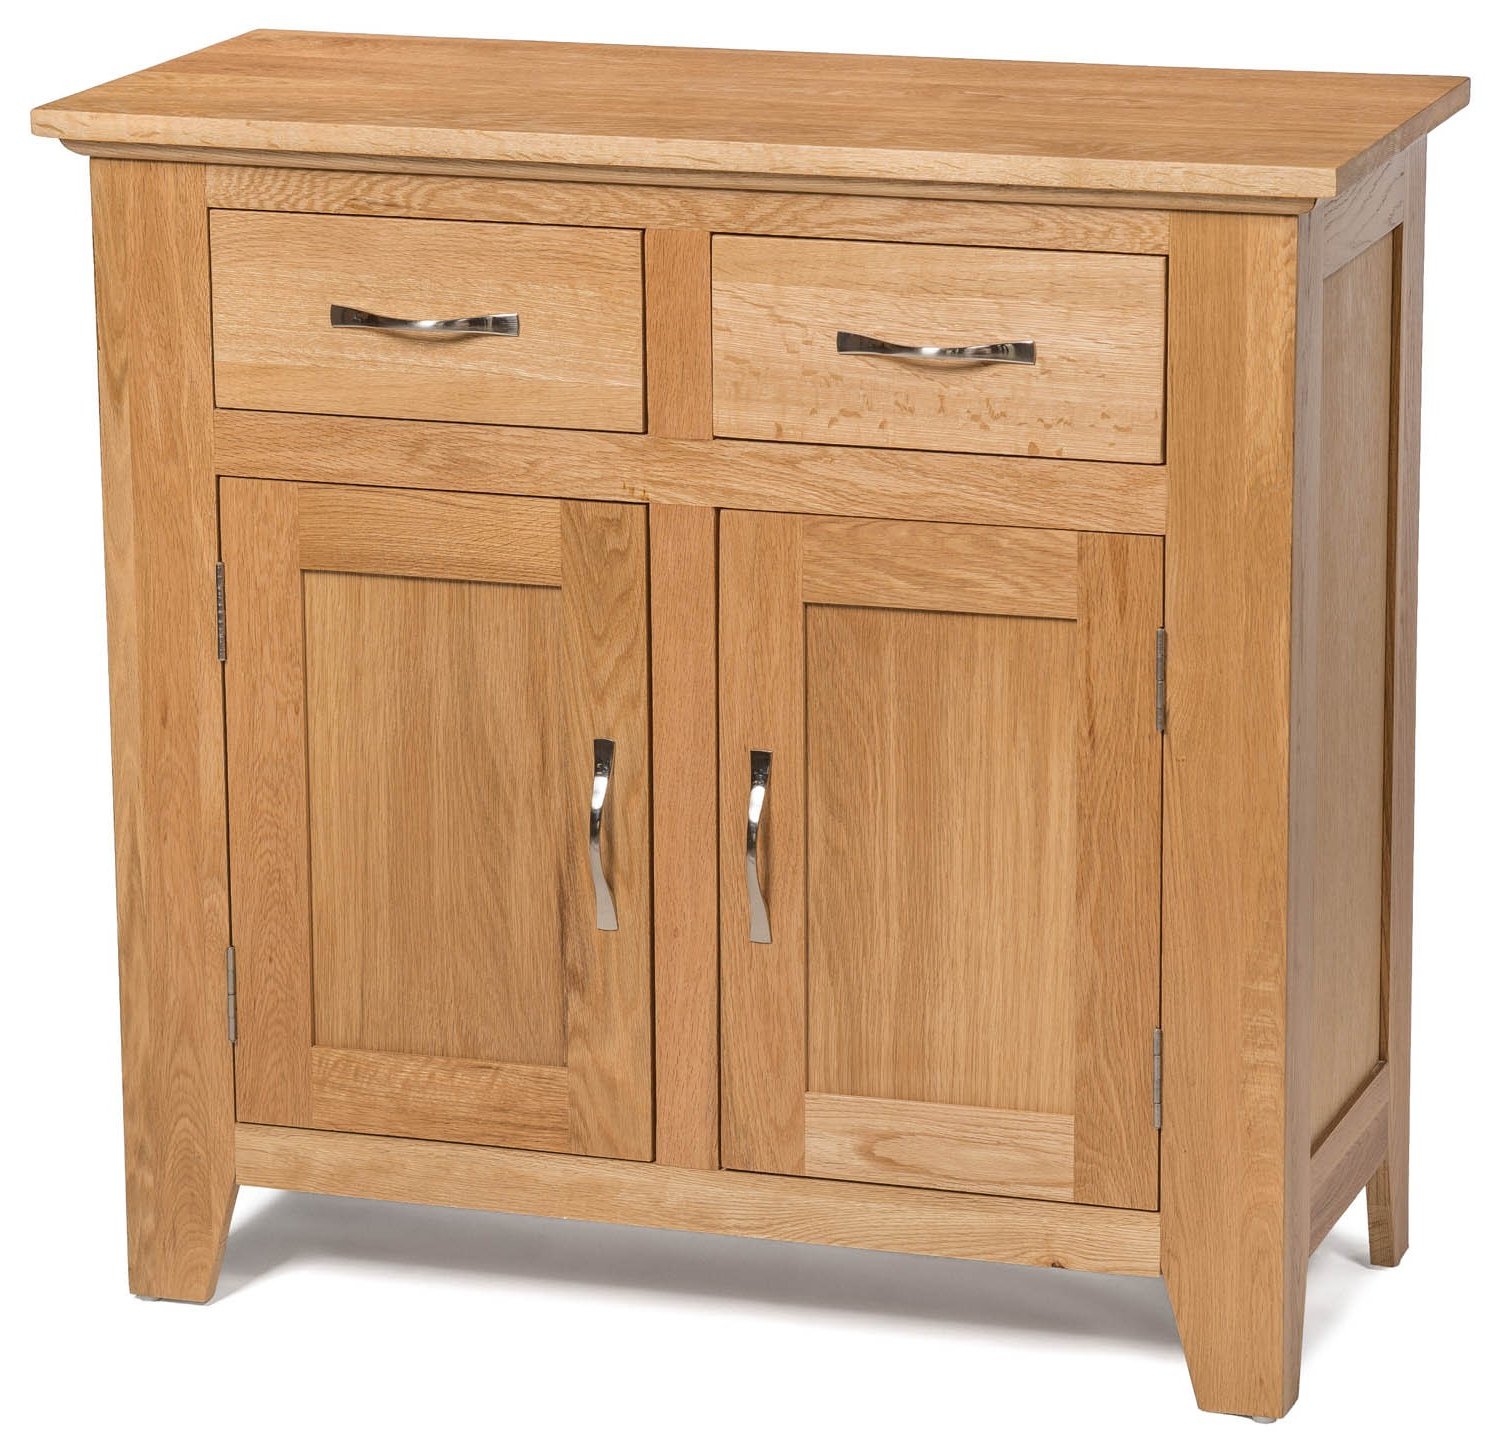 2020 Norton Sideboards With Regard To Camberley Oak Small 2 Door 2 Drawer Sideboard (View 19 of 20)